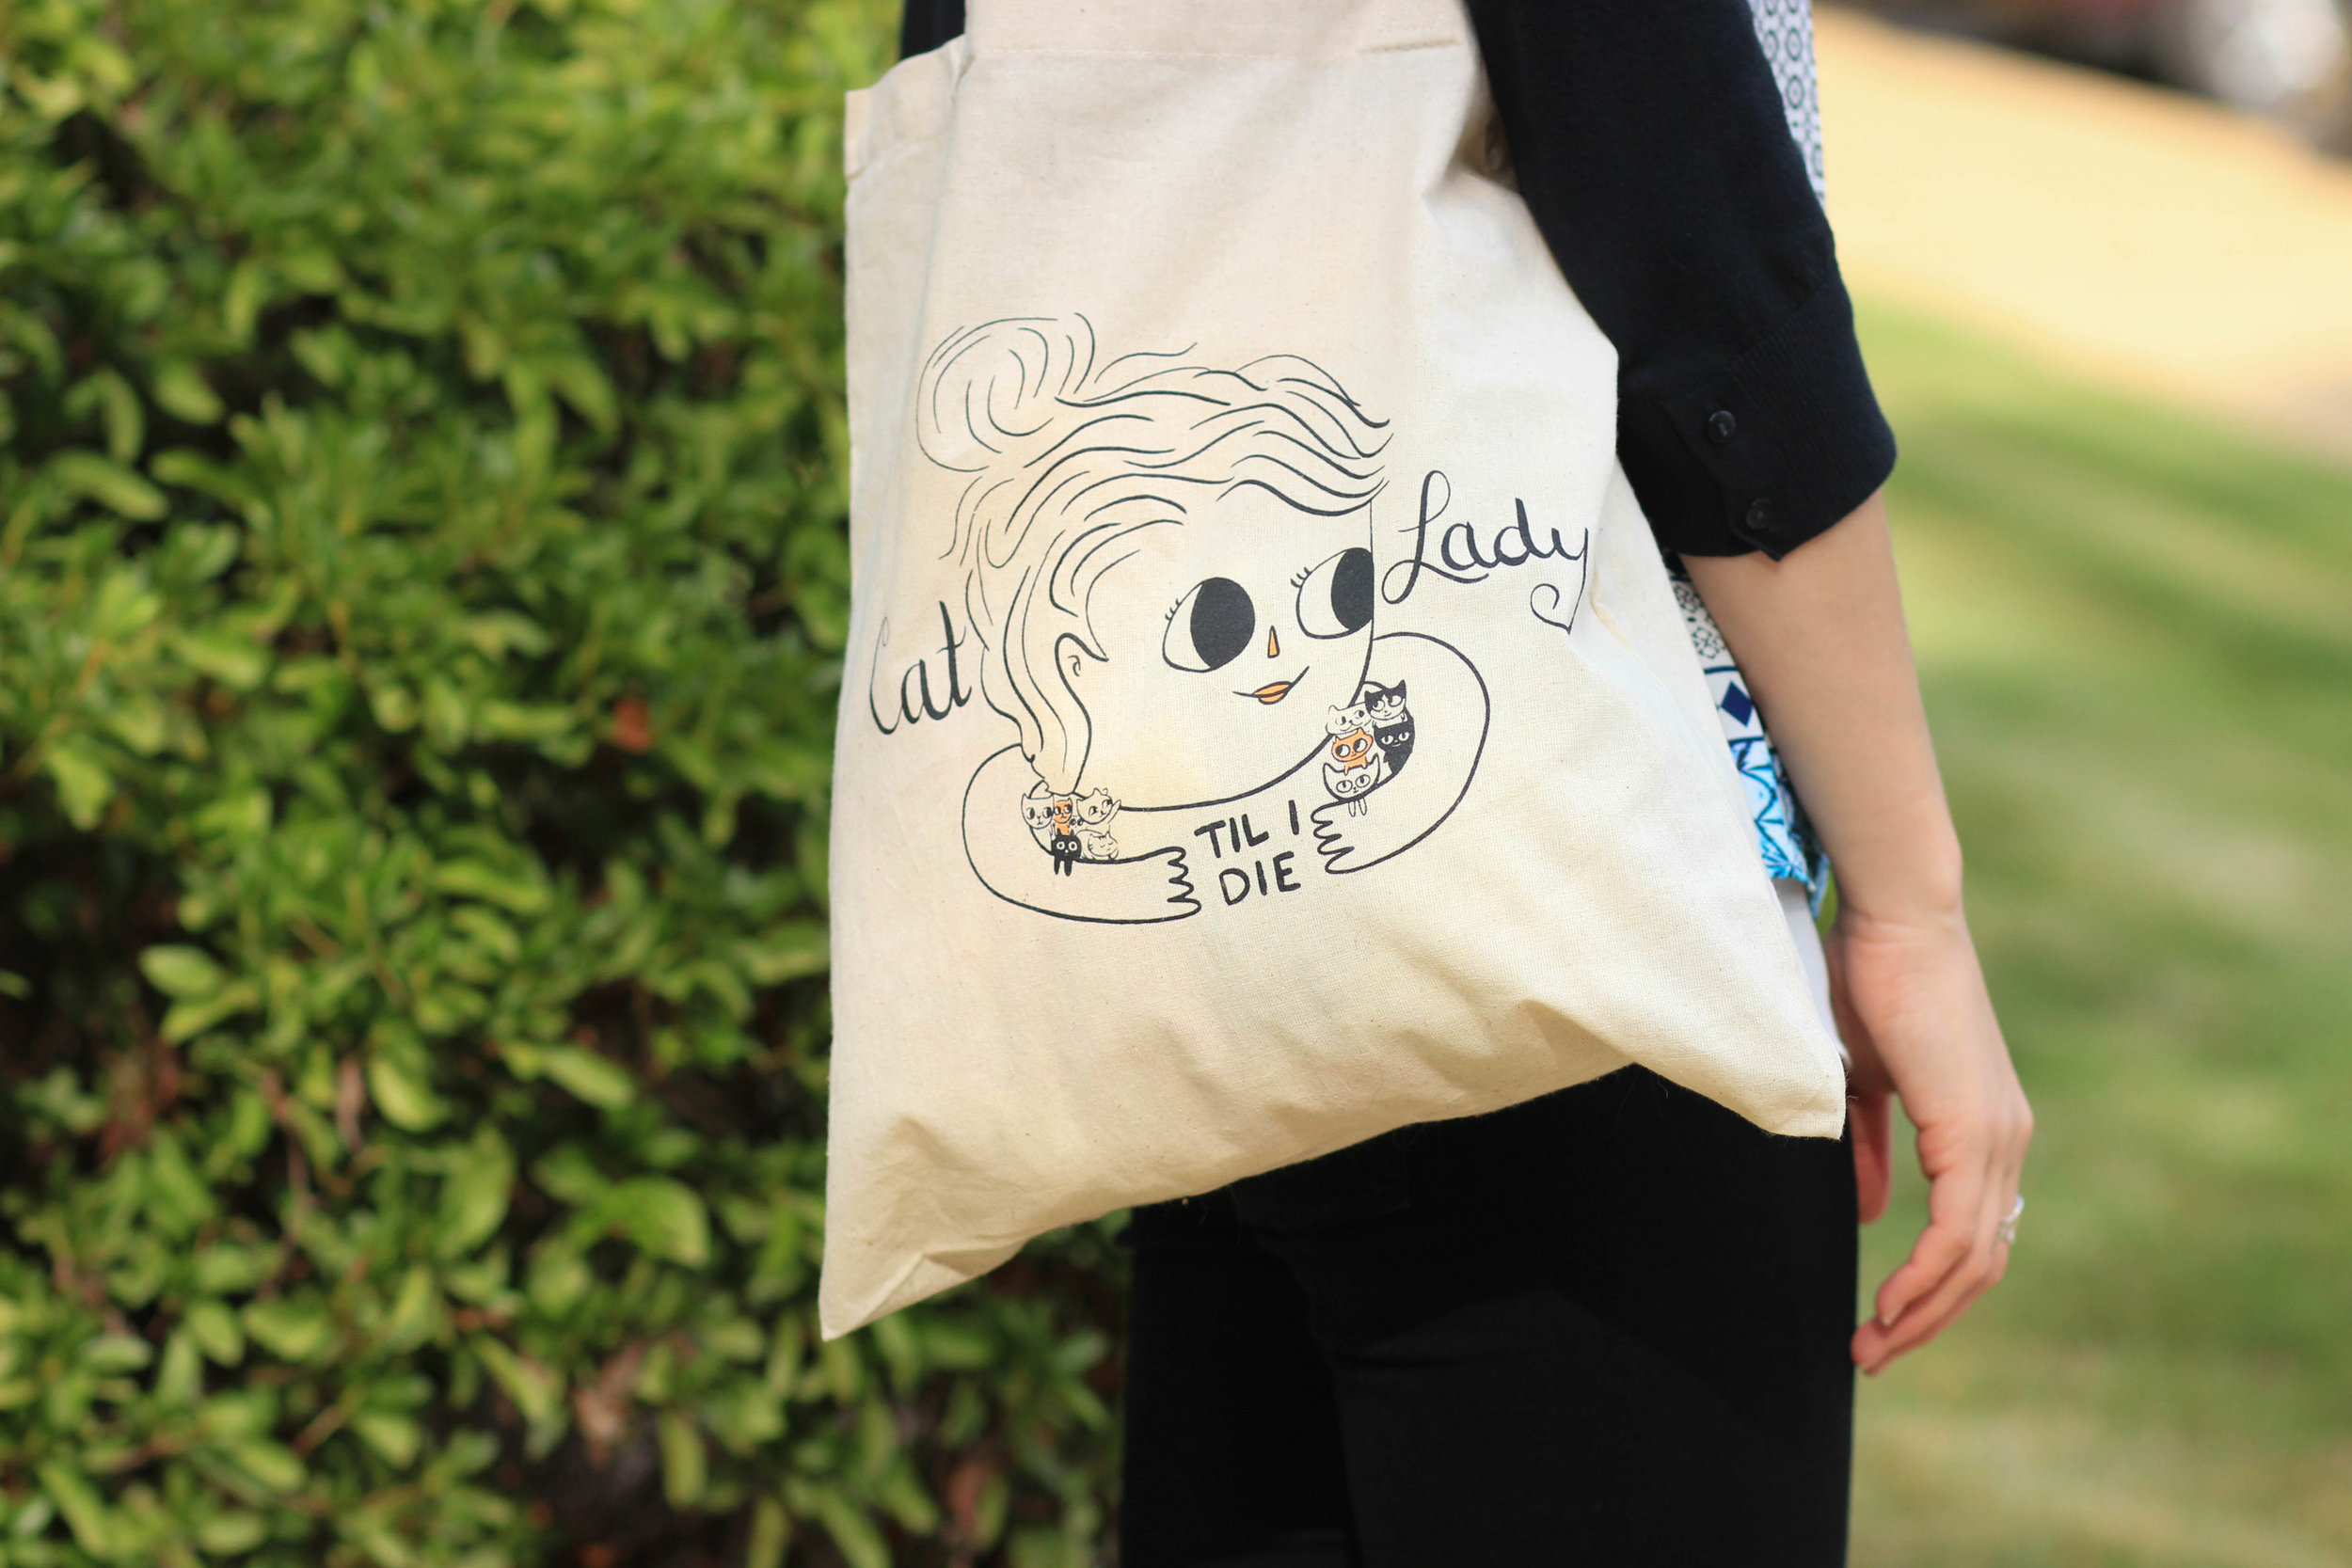 This Cat Lady tote is purrfect for hauling books, wine or cat toys!